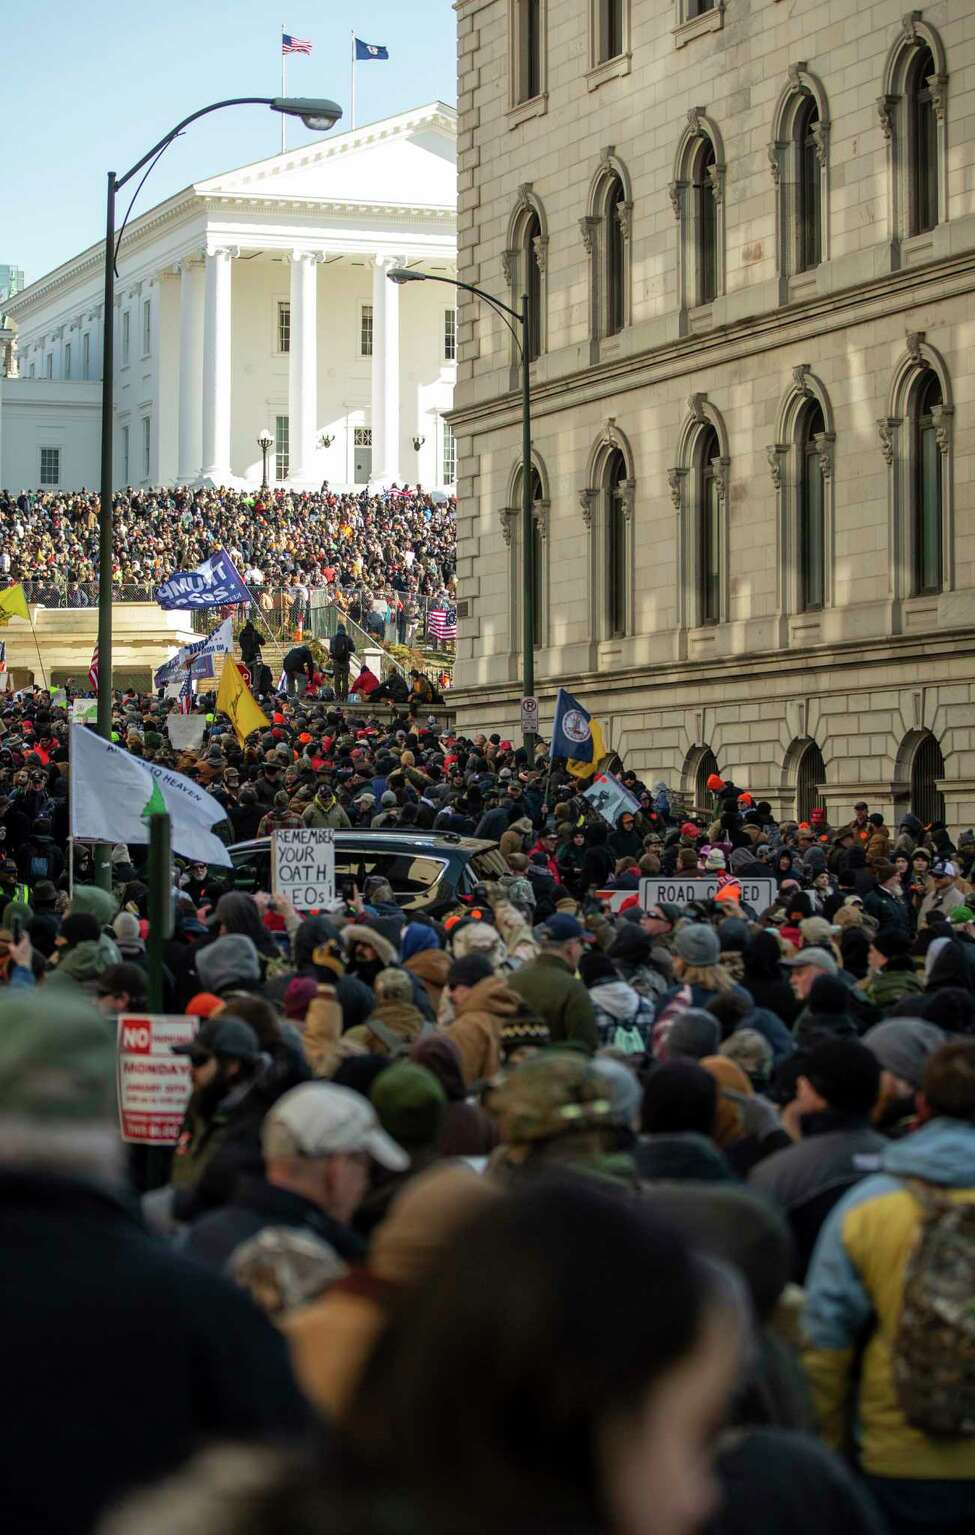 Gun-rights advocates fill the streets surrounding the Virginia State Capitol in Richmond, Va., Monday, Jan. 20, 2020. (Mike Morones/The Free Lance-Star via AP)